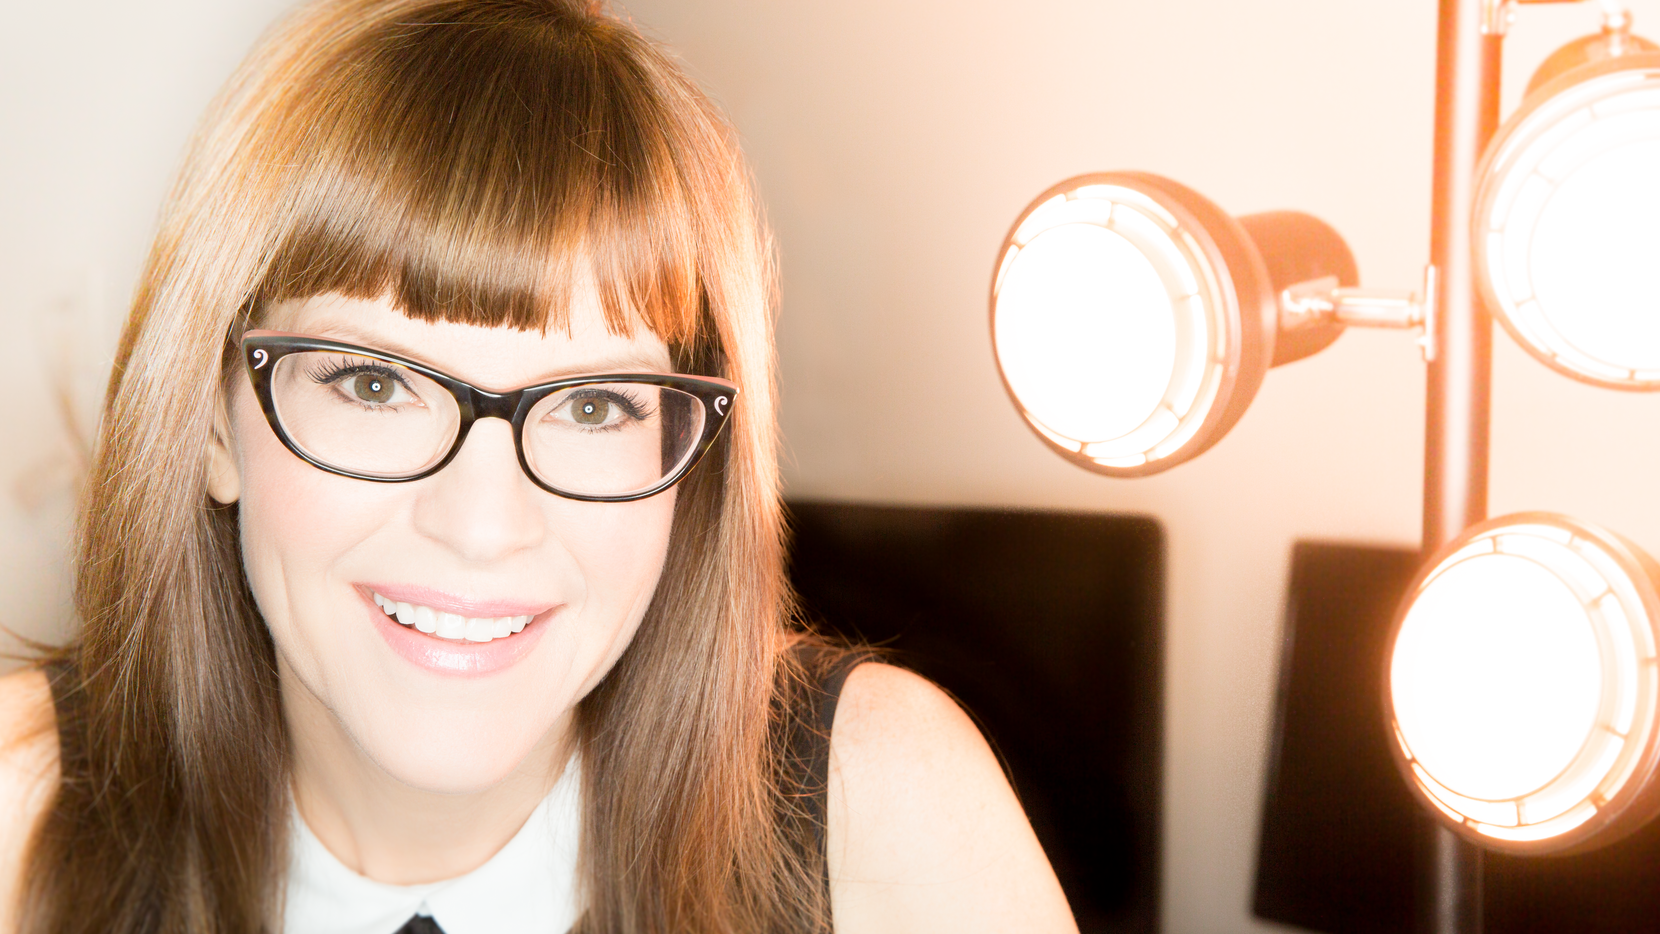 Lisa Loeb on the Ability to 'Stay' Working in an Ever-Changing Music Industry